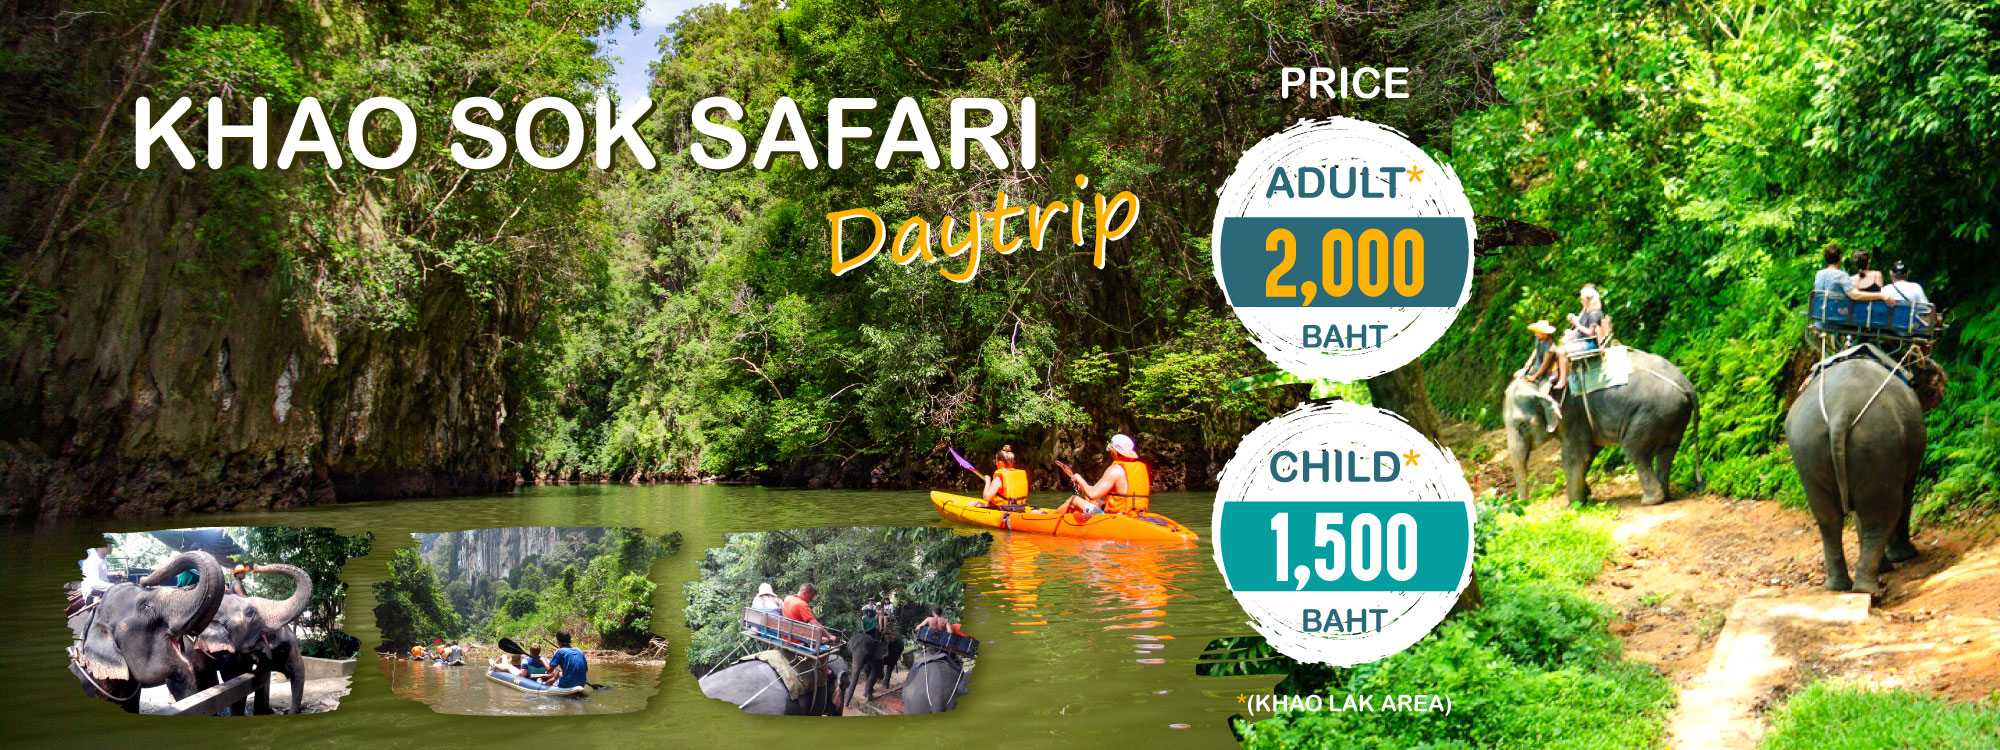 Khao Sok Safari Nature Tour Packages